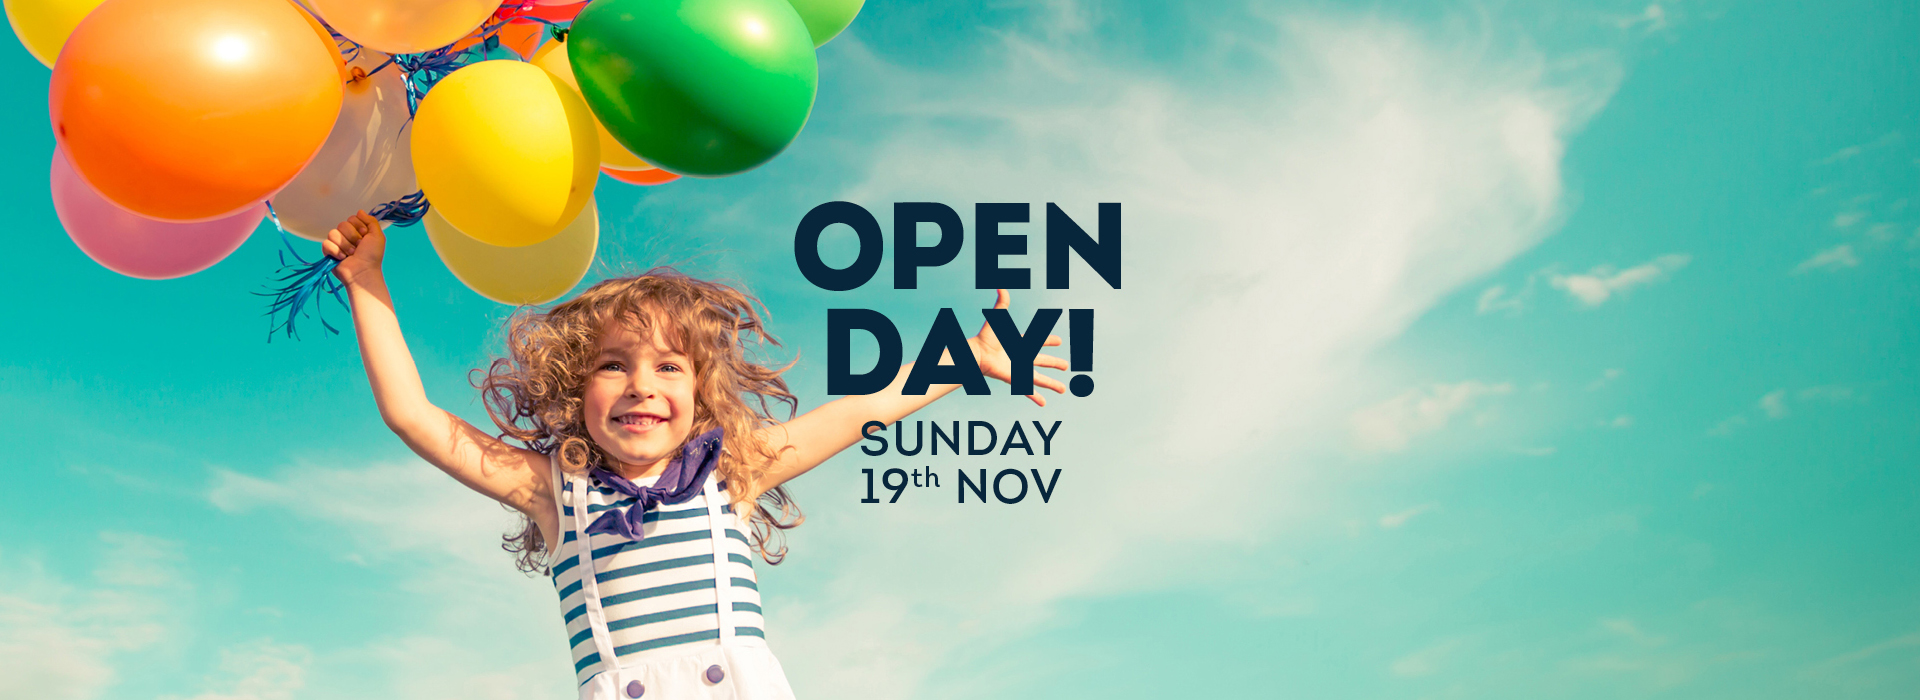 Open Day Gladstone Park – Sunday 19th November 2017